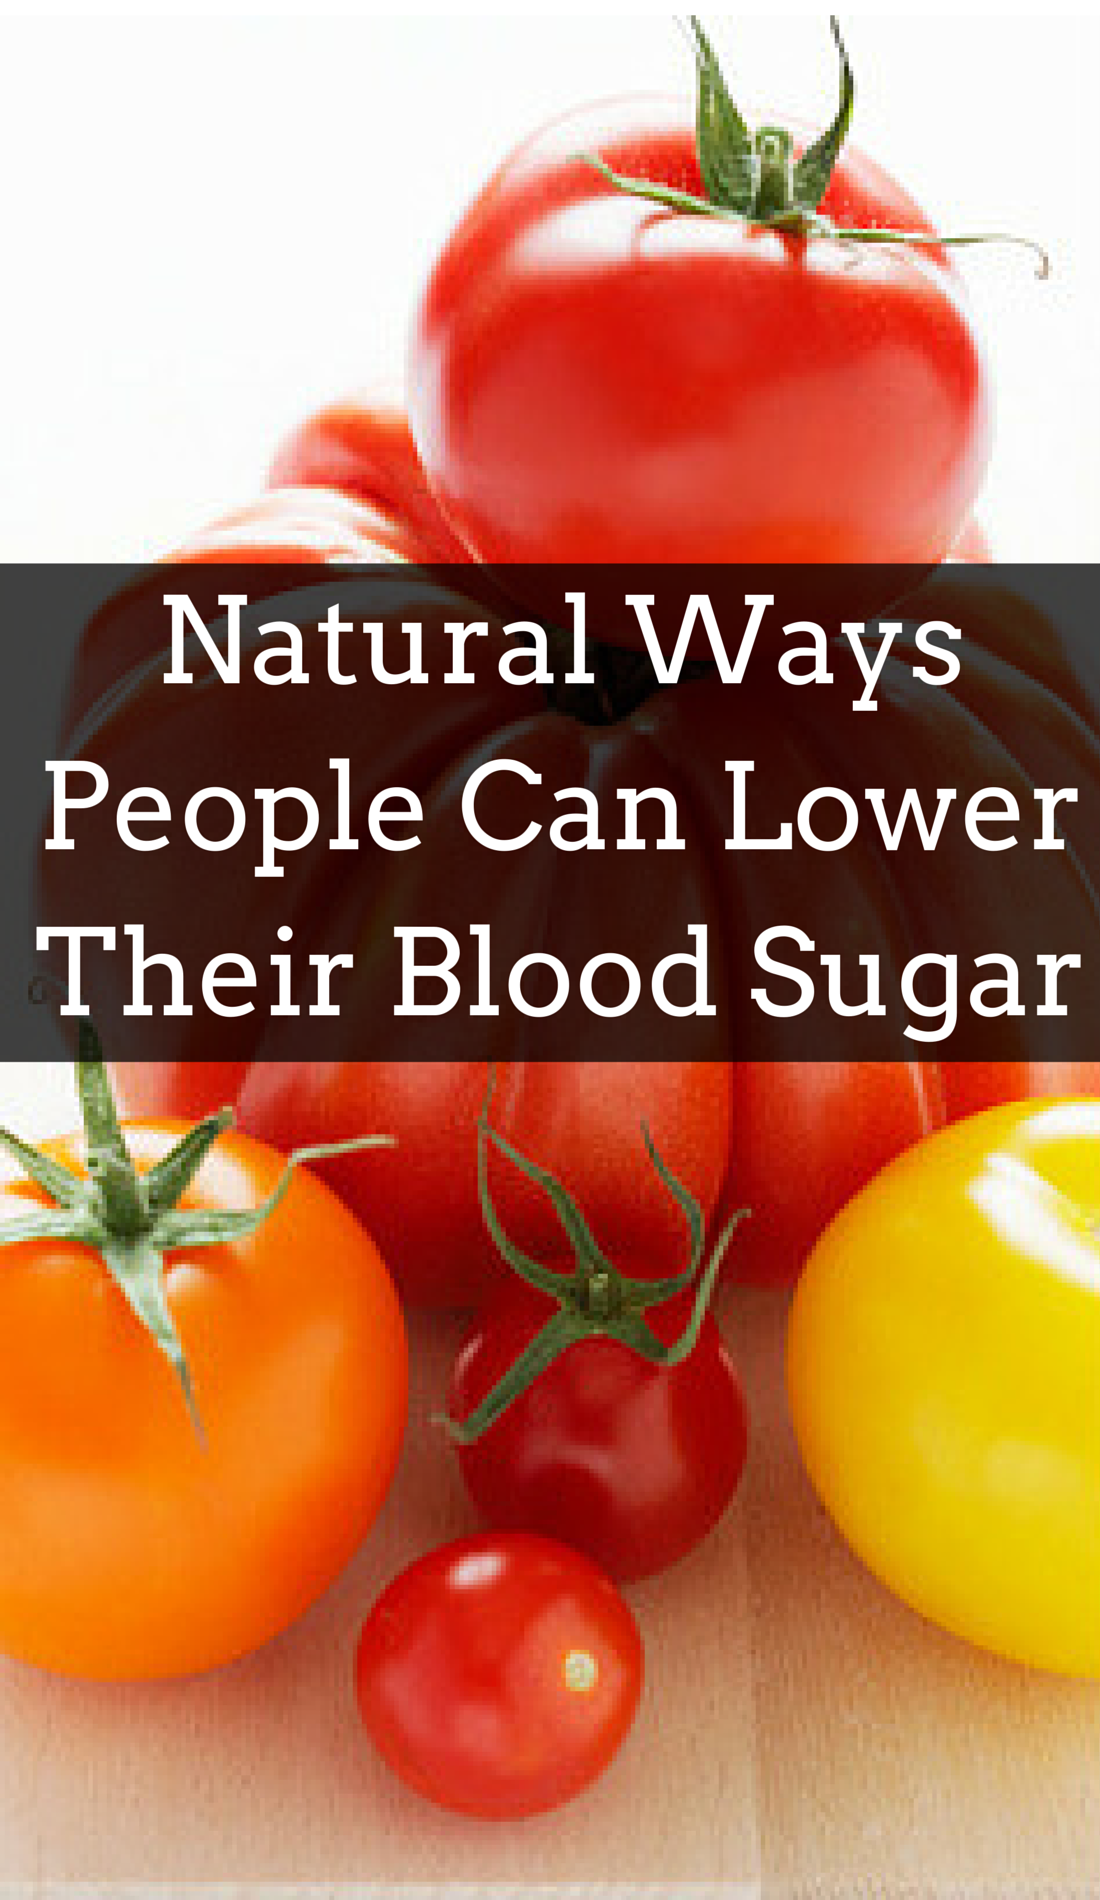 5 Natural Ways People With Prediabetes Can Lower Their Blood Sugar